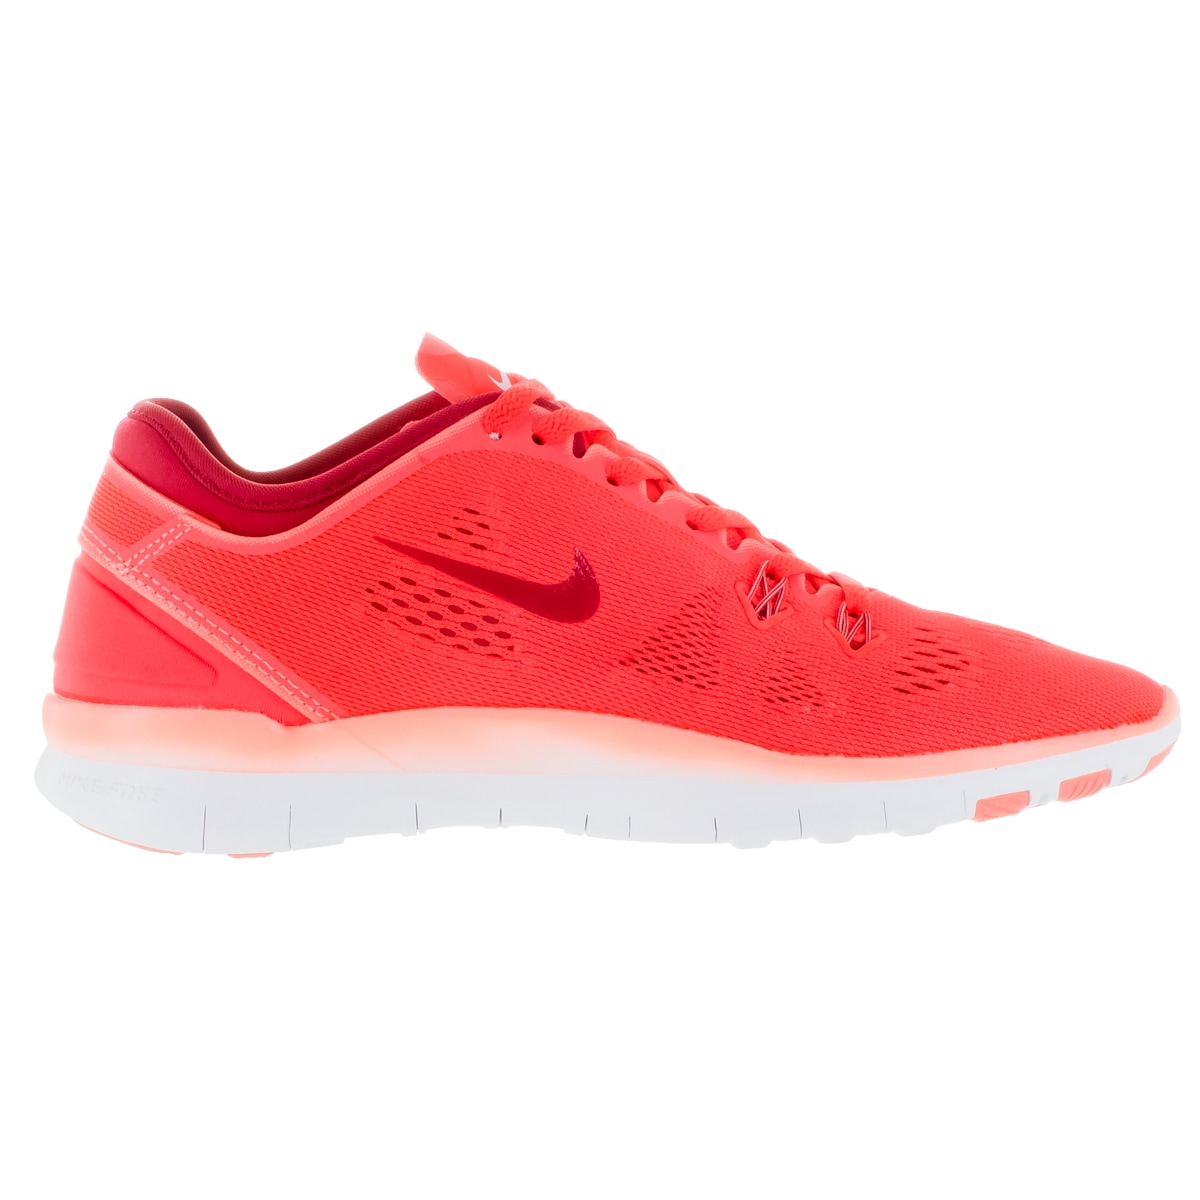 b26a0f370fb7 Shop Nike Women s Free 5.0 Tr Fit 5 Brgh Prm Rd Atmc Pink Wh Training Shoe  - Free Shipping Today - Overstock - 12321982